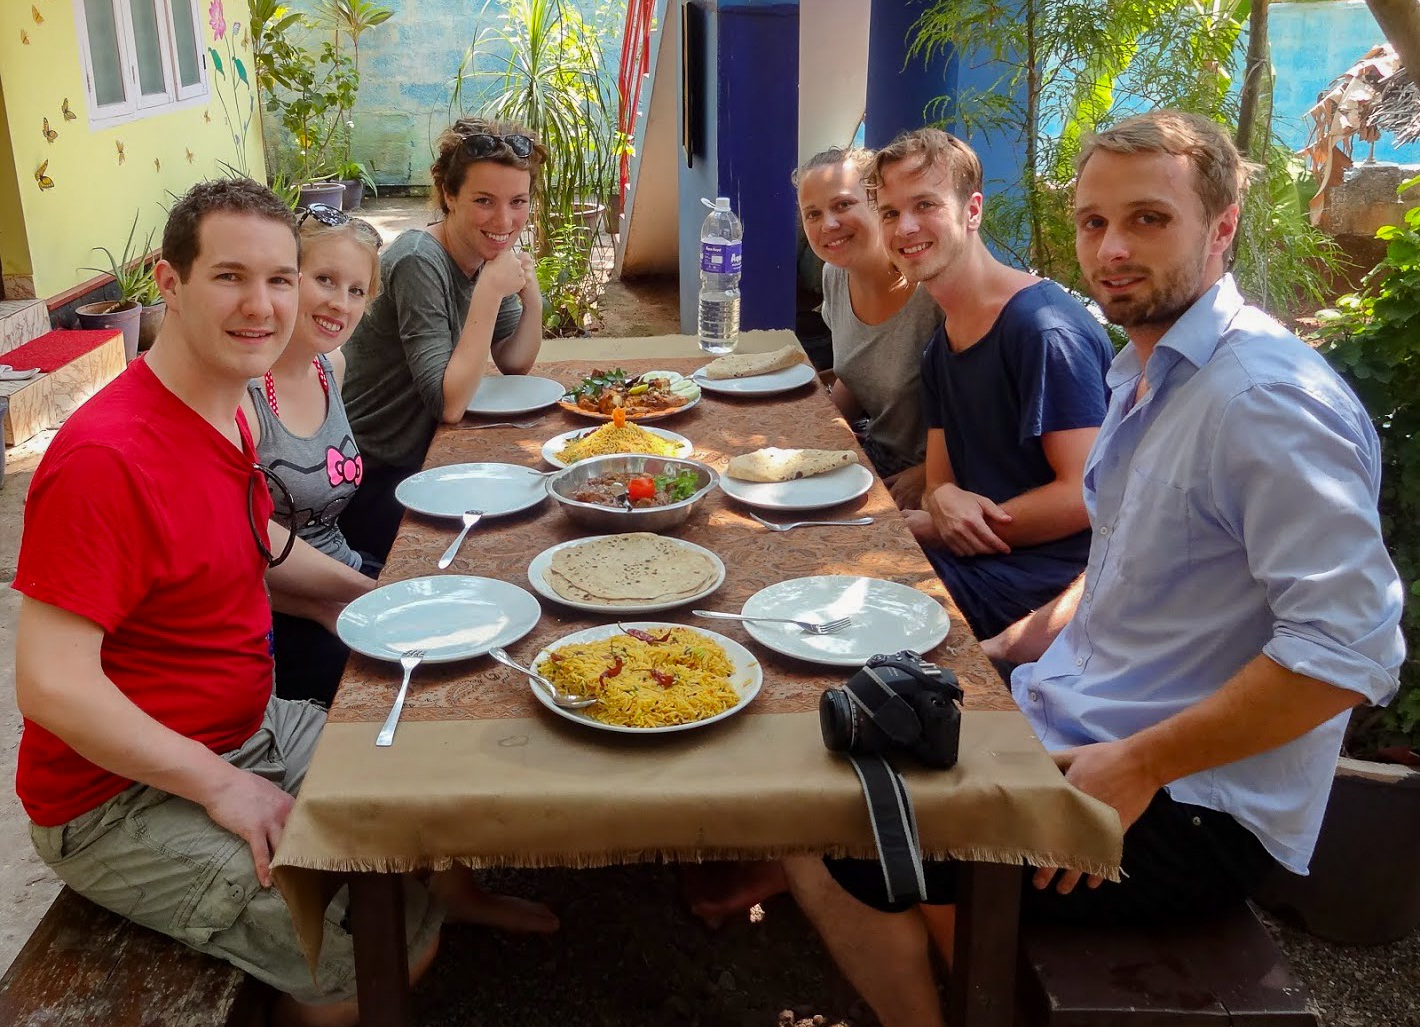 Karl, Rosie and 4 others sit around along a table with curry and rice dishes at Khan's Cooking Class, Varkala, India